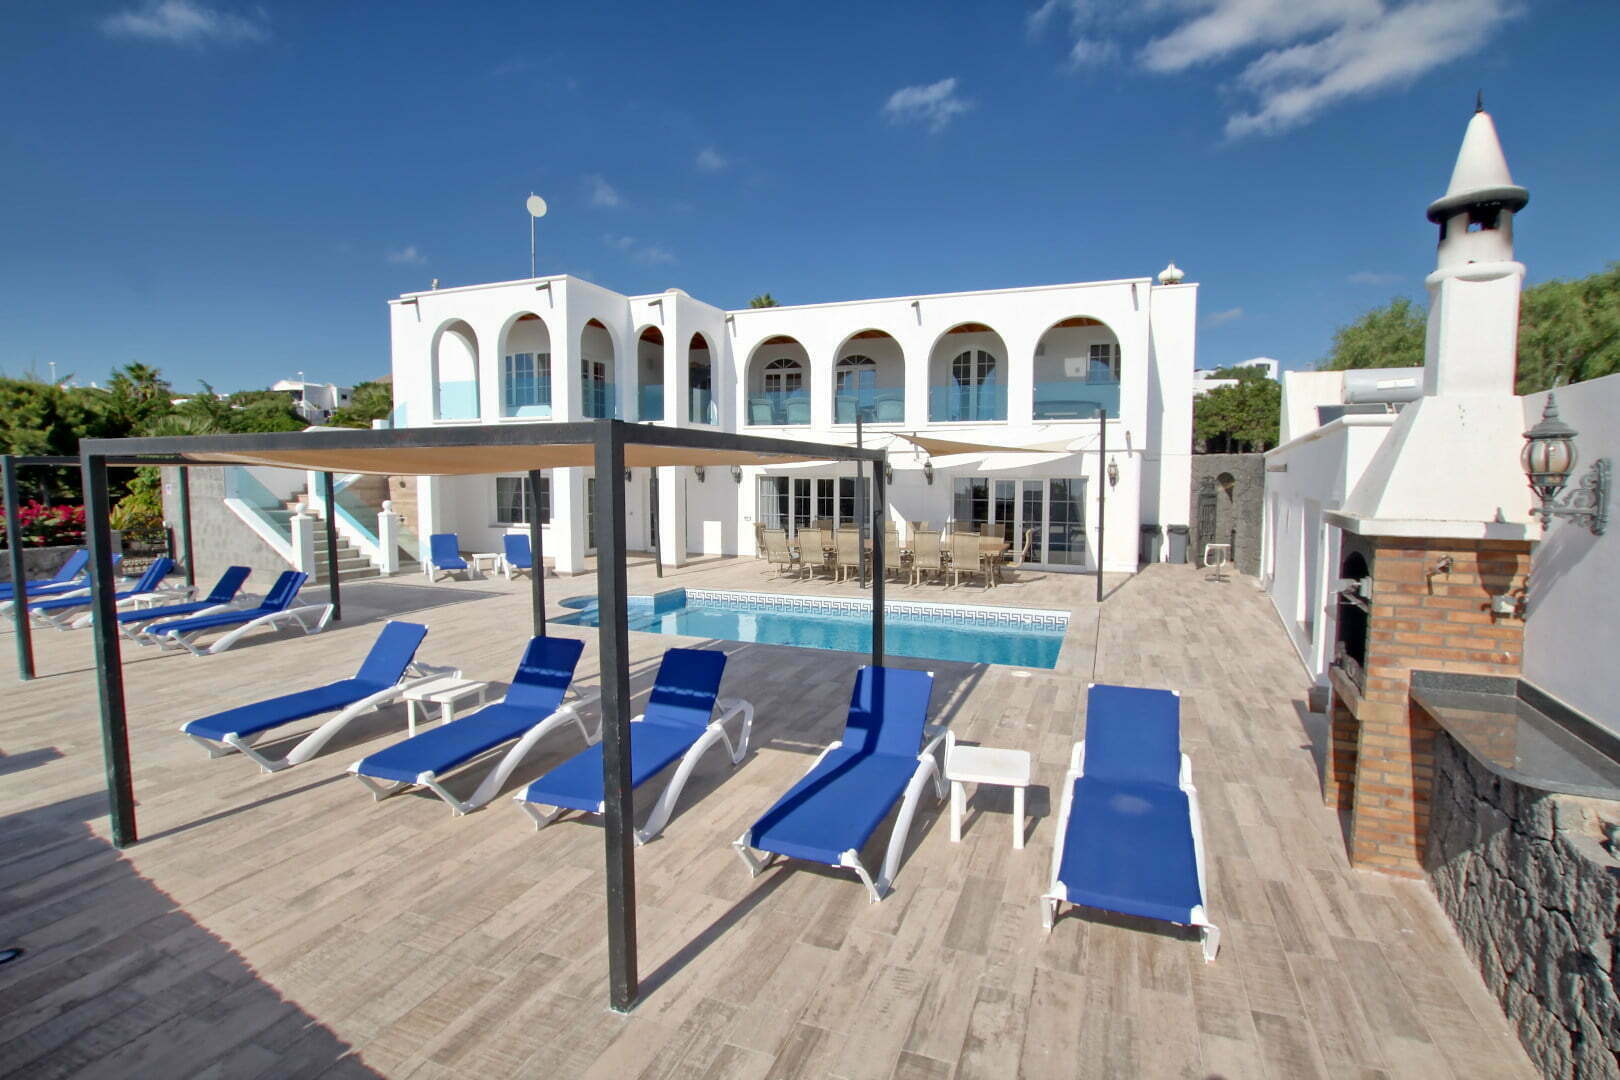 Villa El Palacete - Lanzarote - 9 Bedrooms - 9 Bathrooms - Holiday Rental - Best Villas Lanzarote